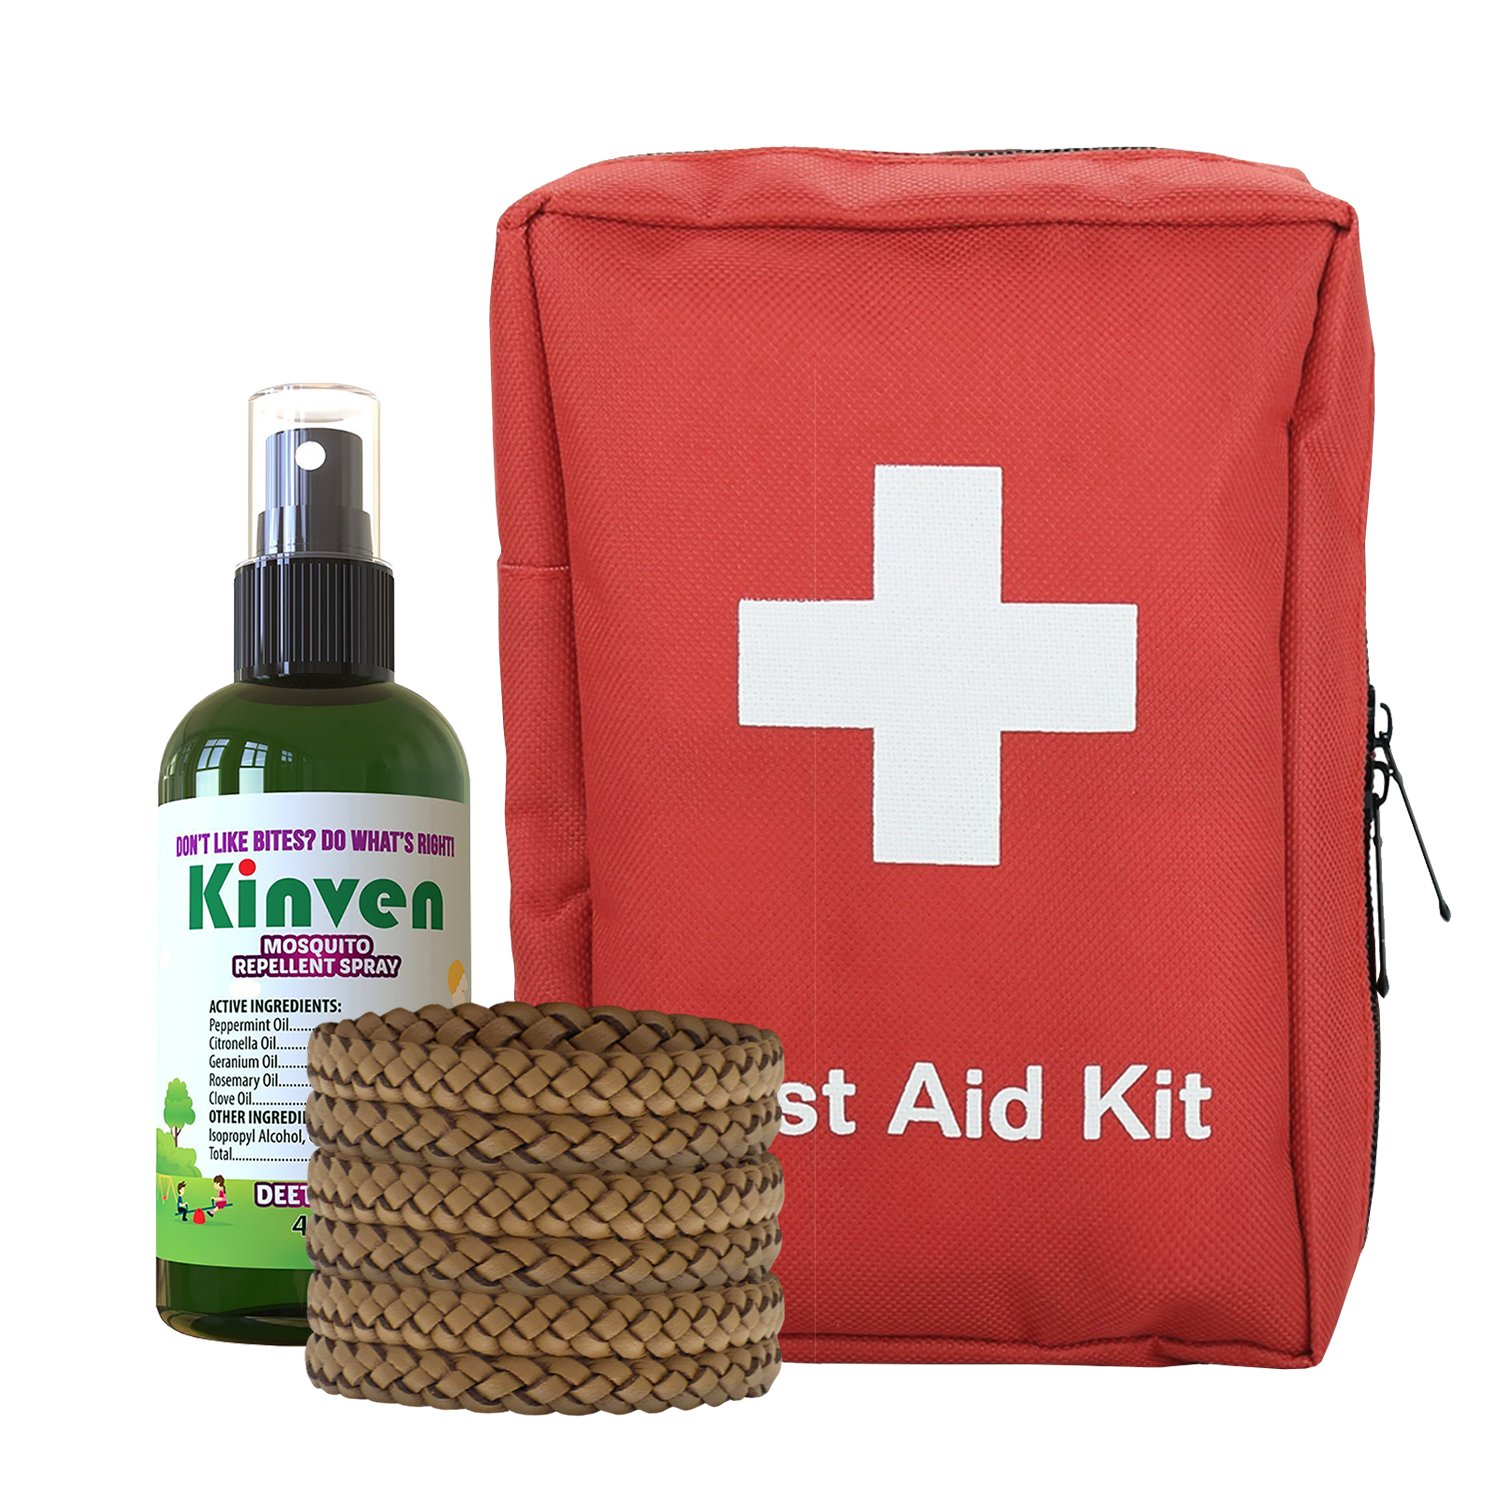 First Aid Kit and Insect Repellent Bundle - with 72 Piece Emergency Kit, Kinven 4oz Spray, 6 Bracelets (Travel Set)